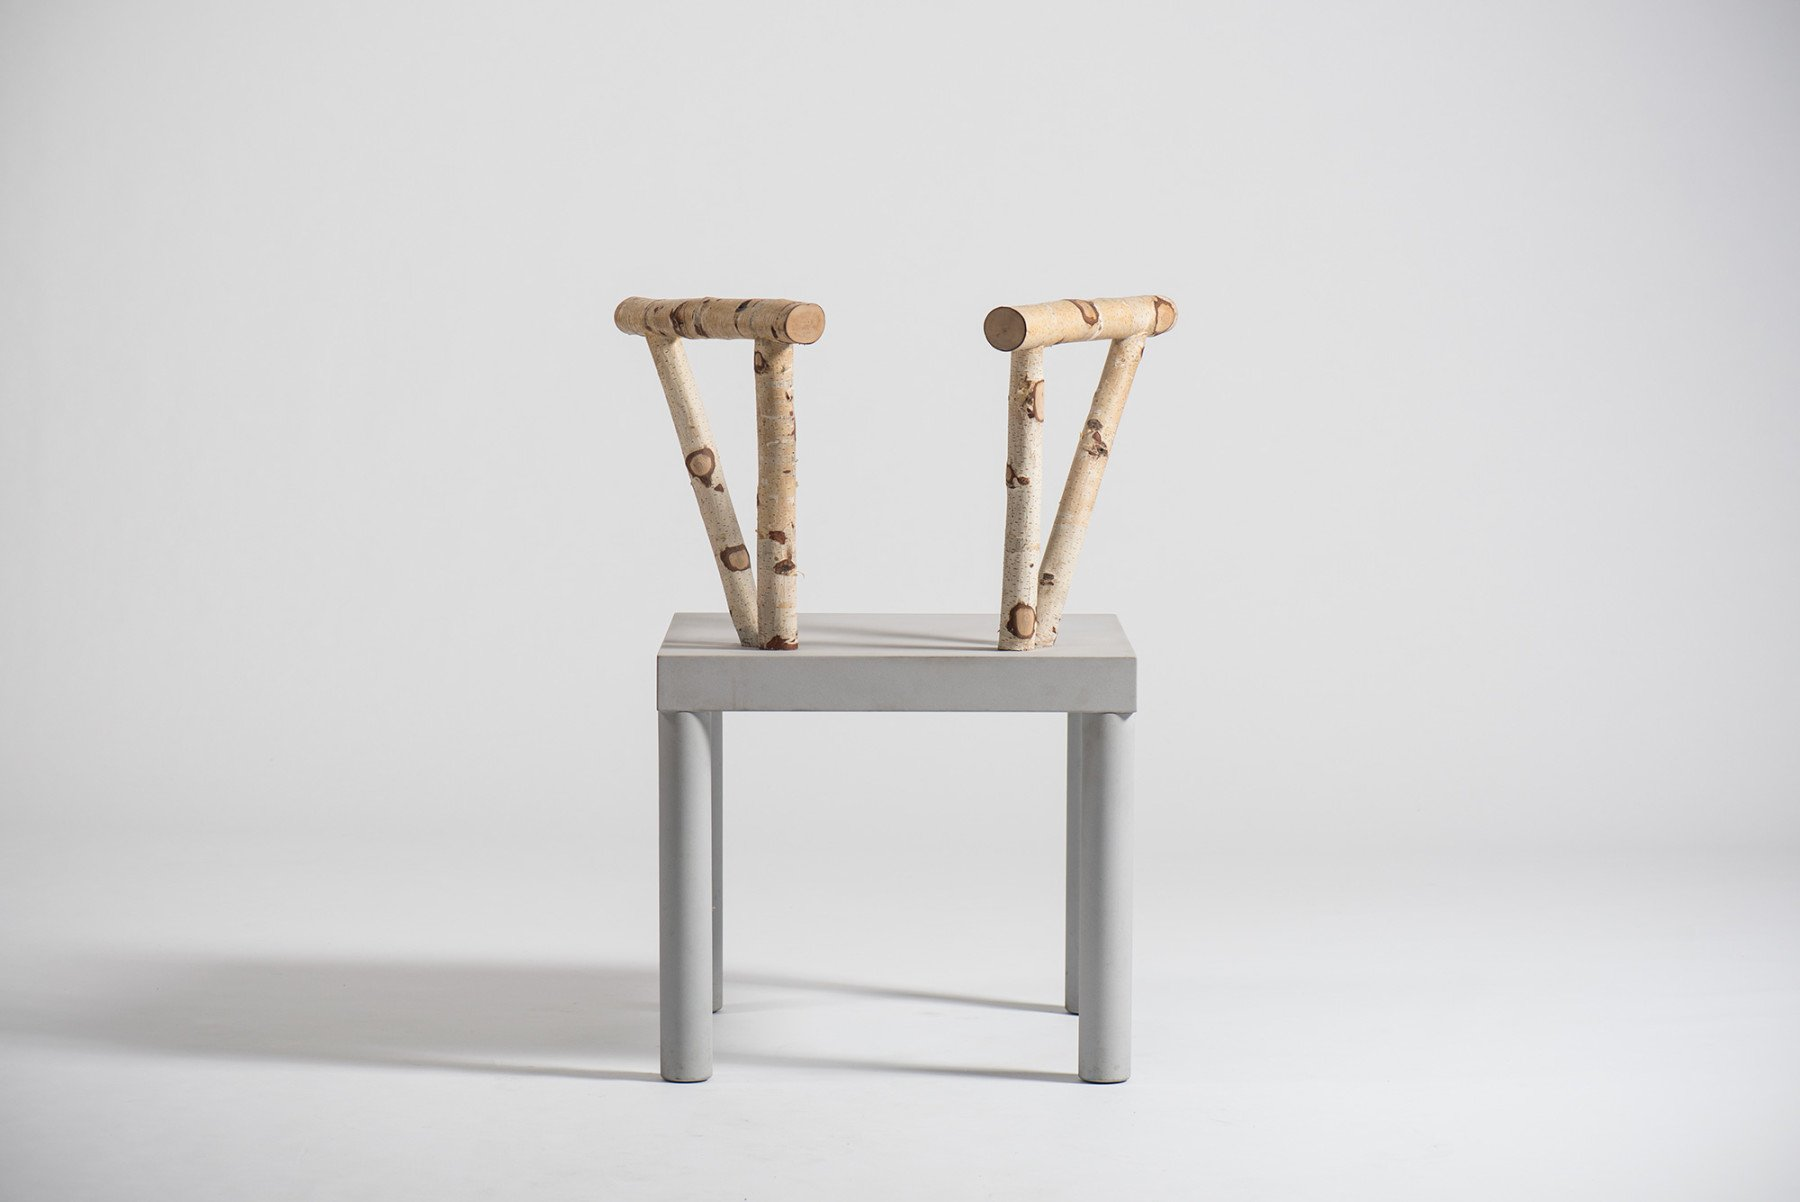 Italian designer Andrea Branzi - Domestic Animals chair 5 at art and design gallery Casati Gallery